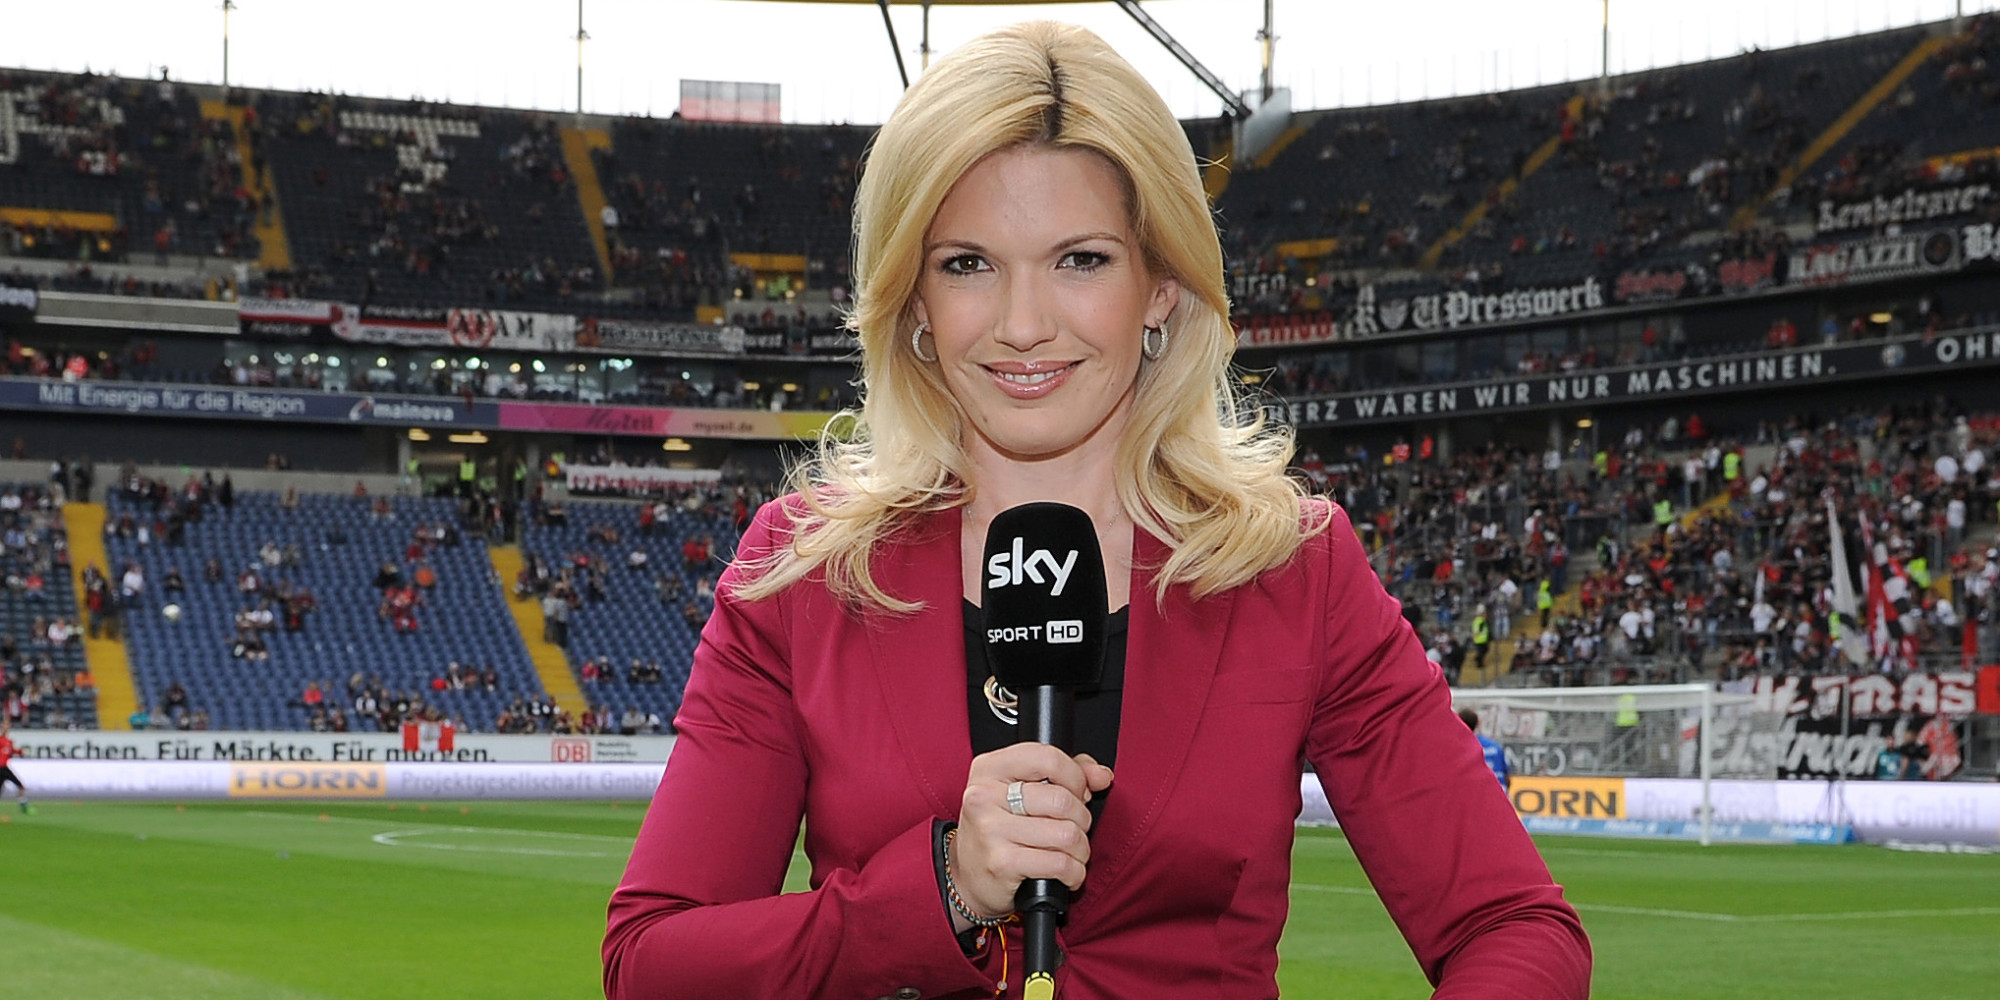 18-jessica-kastrop-sky-sports-deutschland-germany-hottest-soccer-reporters-around-the-world